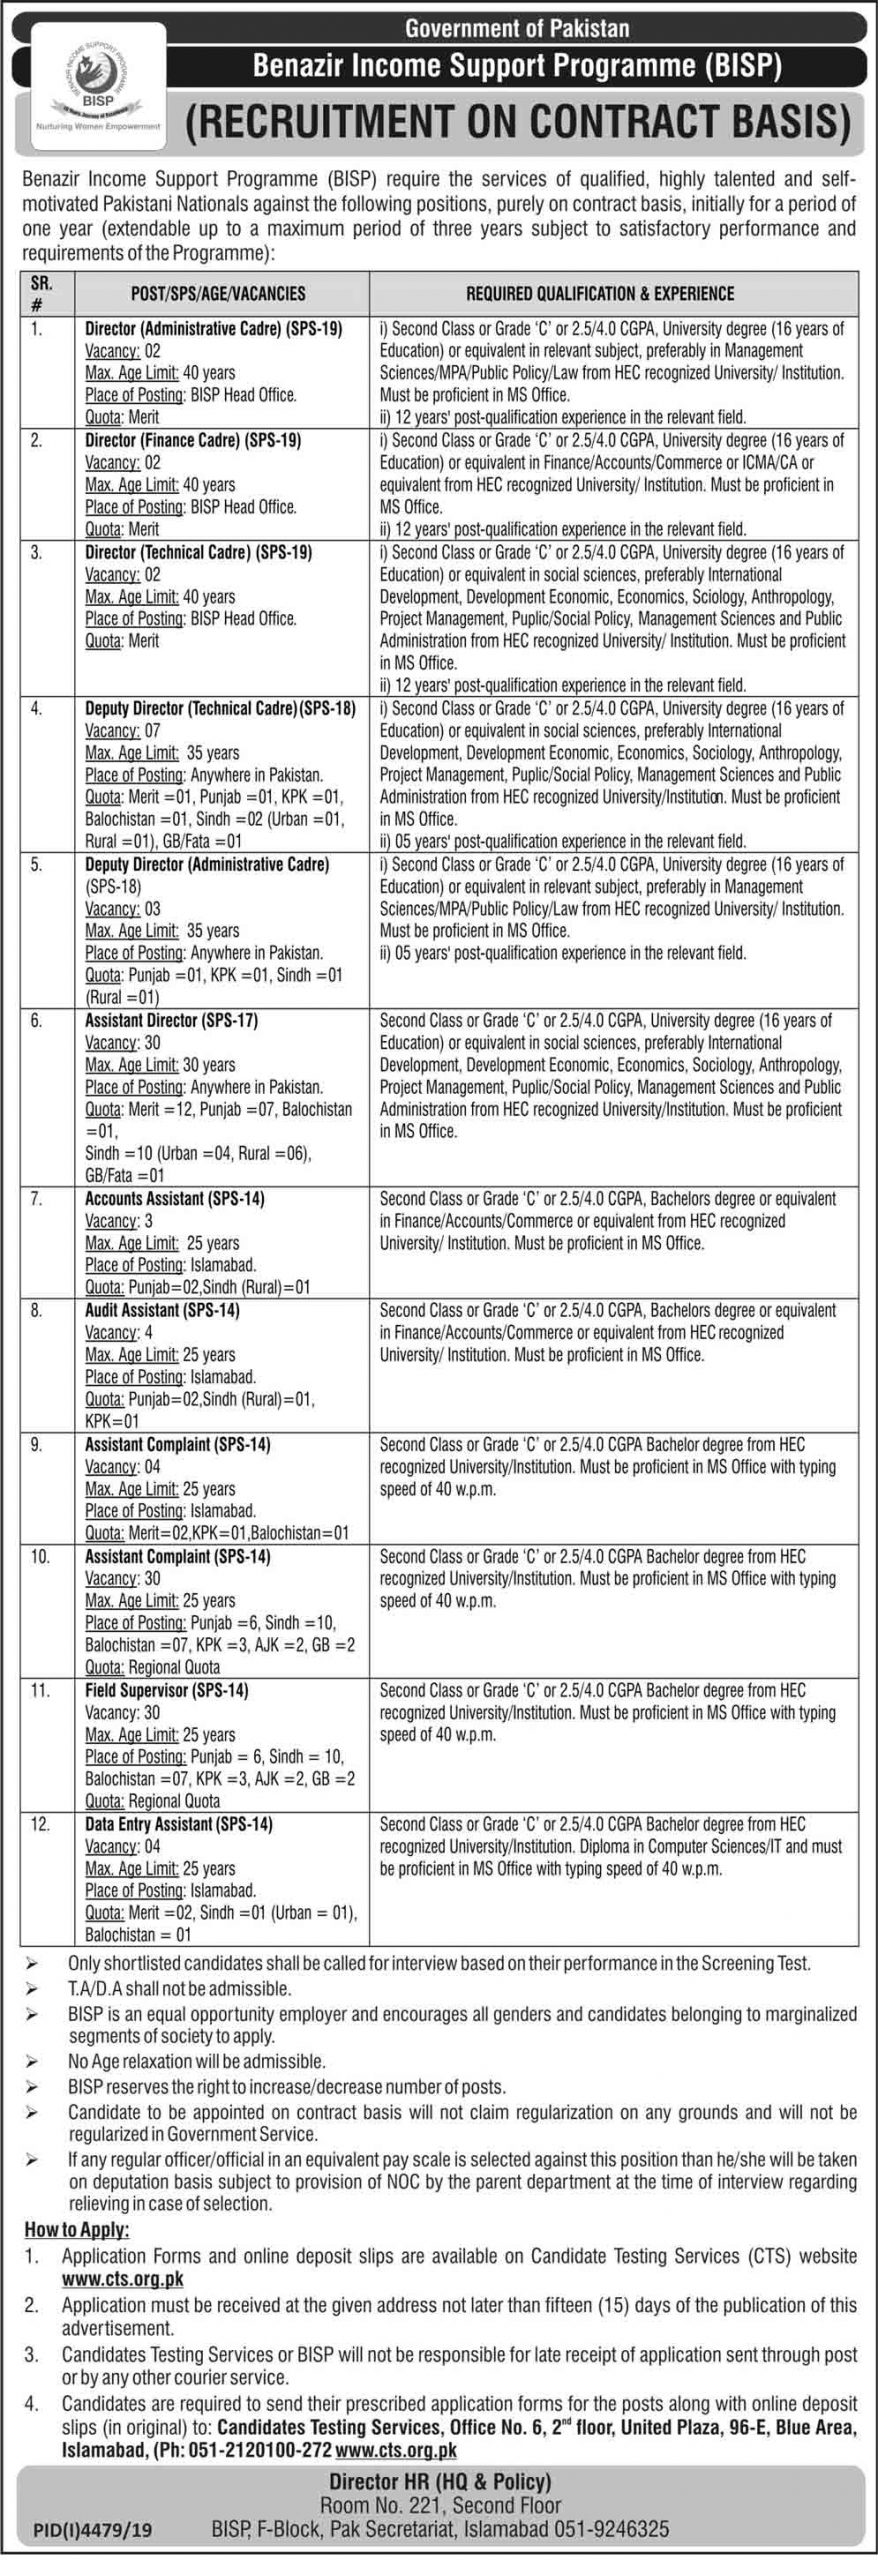 BISP Benazir Income Support Programme Jobs CTS Roll No Slip